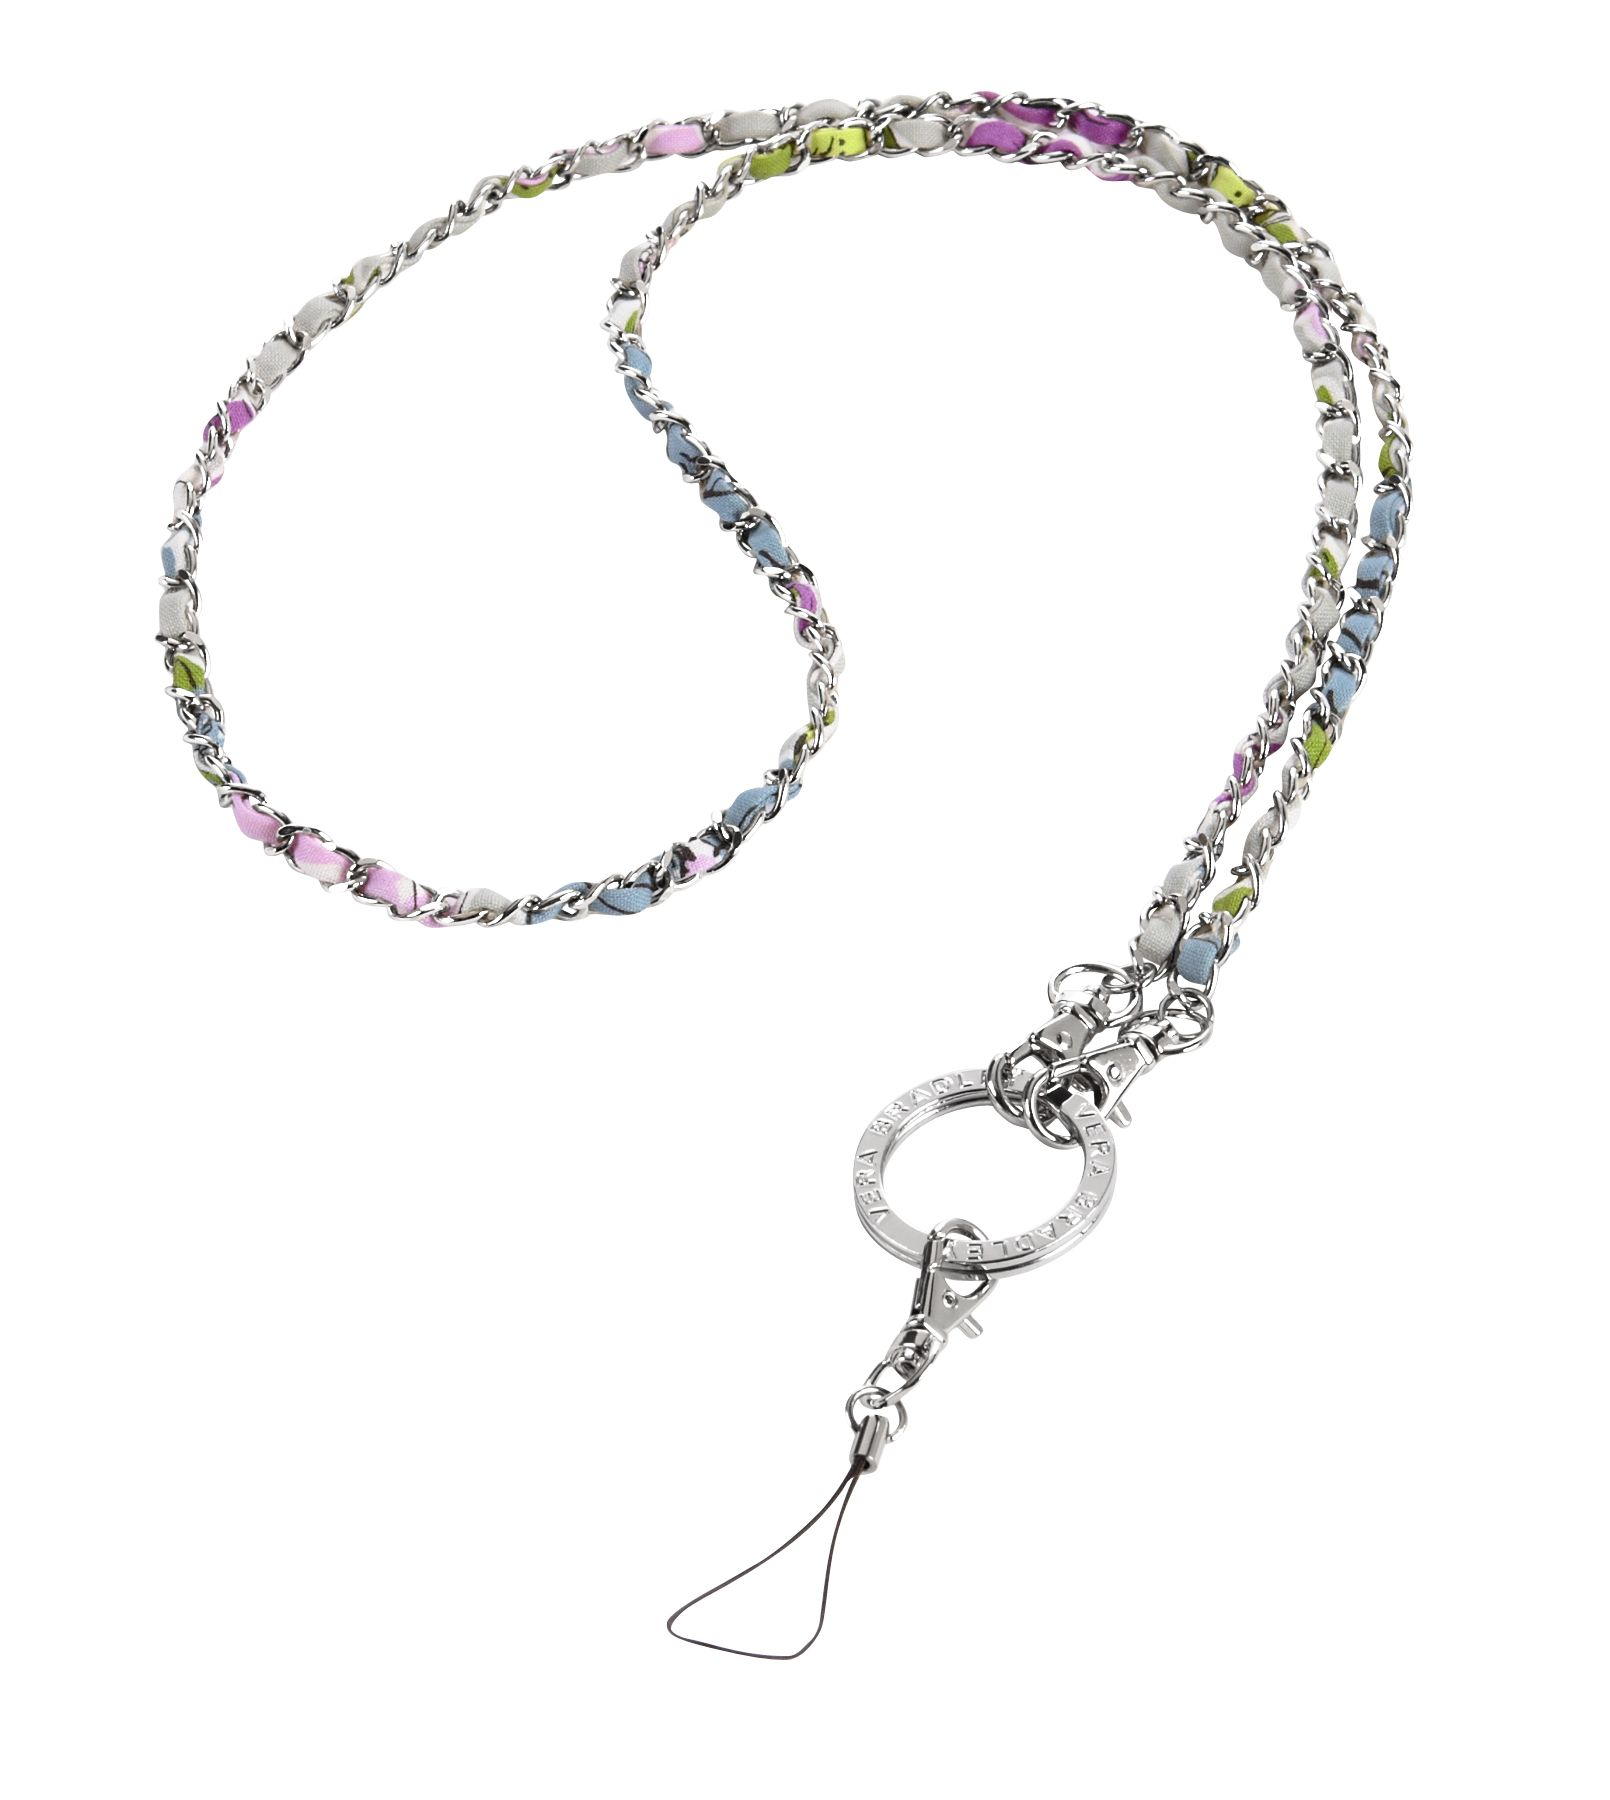 Vera Bradley Chain Lanyard in Watercolor